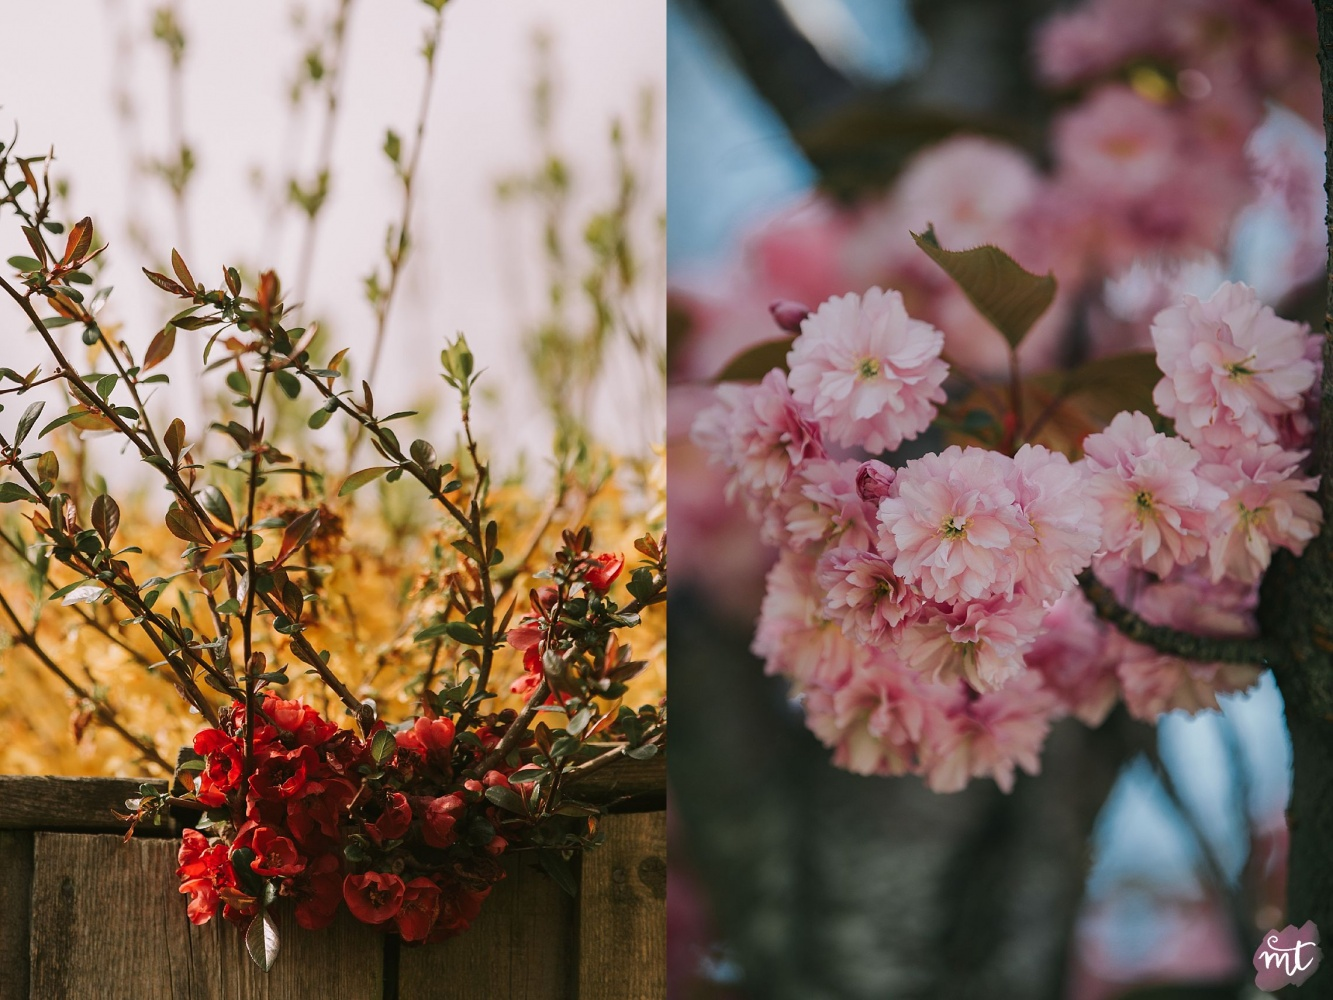 Seasons, Summer, Natural Light, UK Photographer, Real Life, Mother Nature, Cherry Blossom